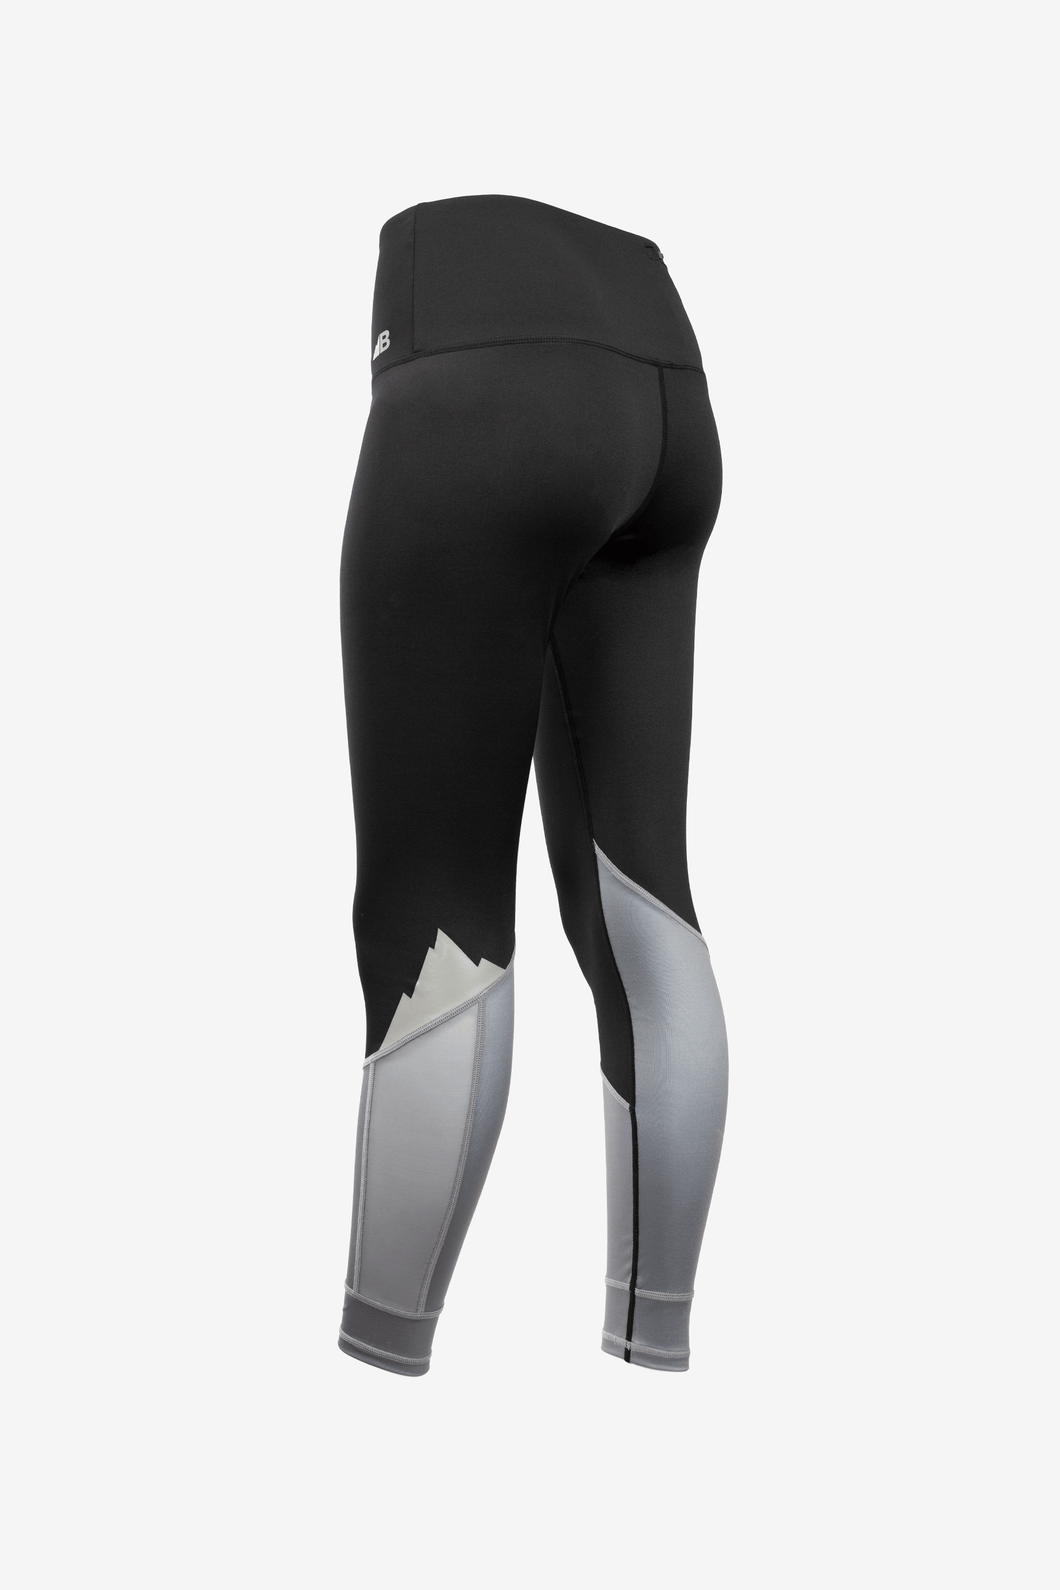 Women's Venture Leggings (Black)